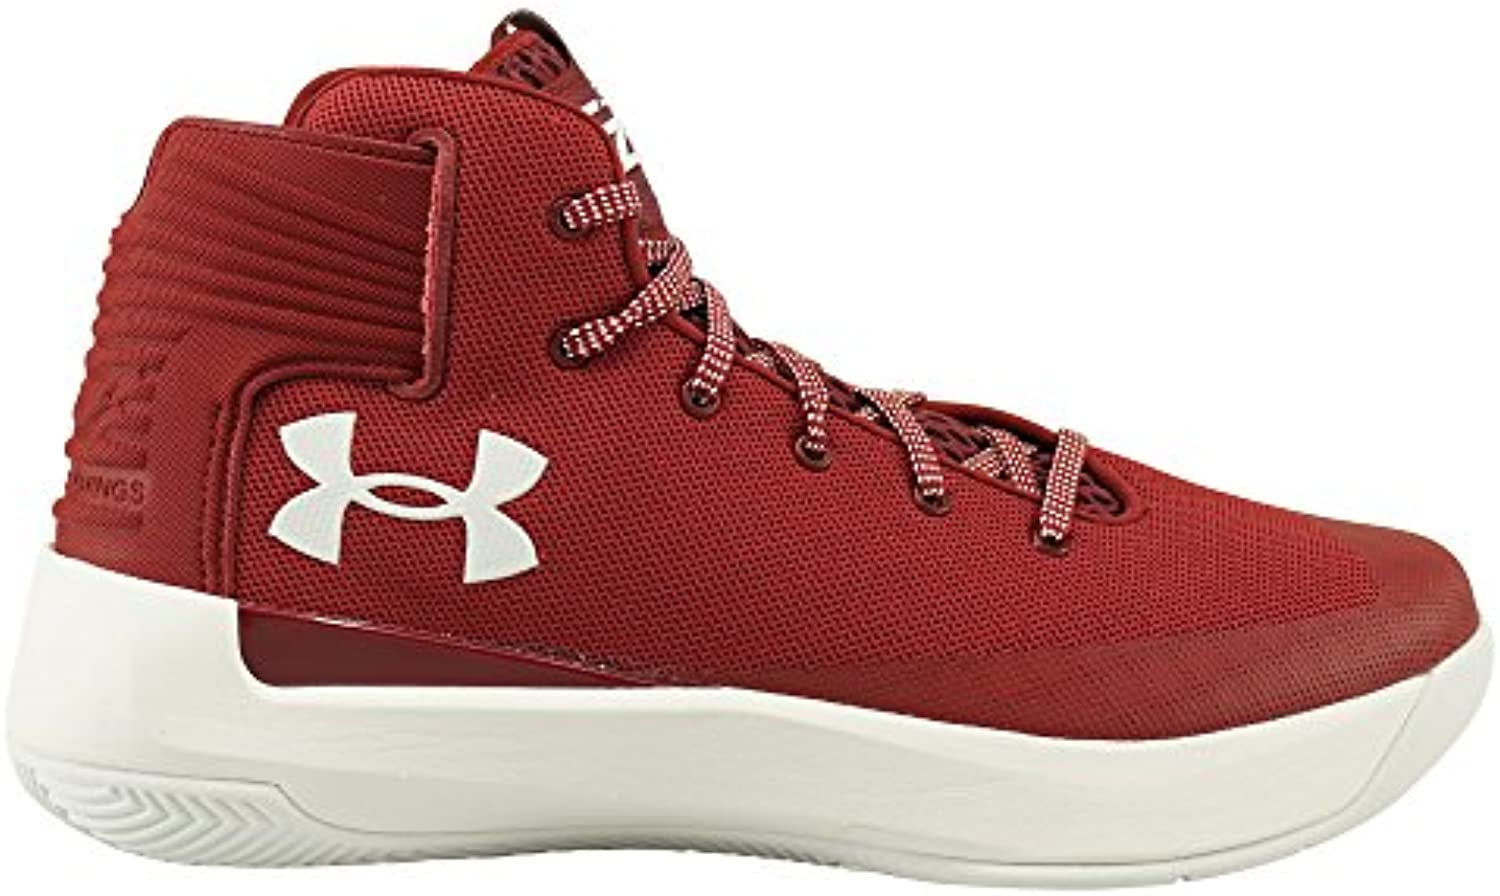 Under Armour Curry SC 3Zero Hombre Zapatillas de baloncesto, 41  -